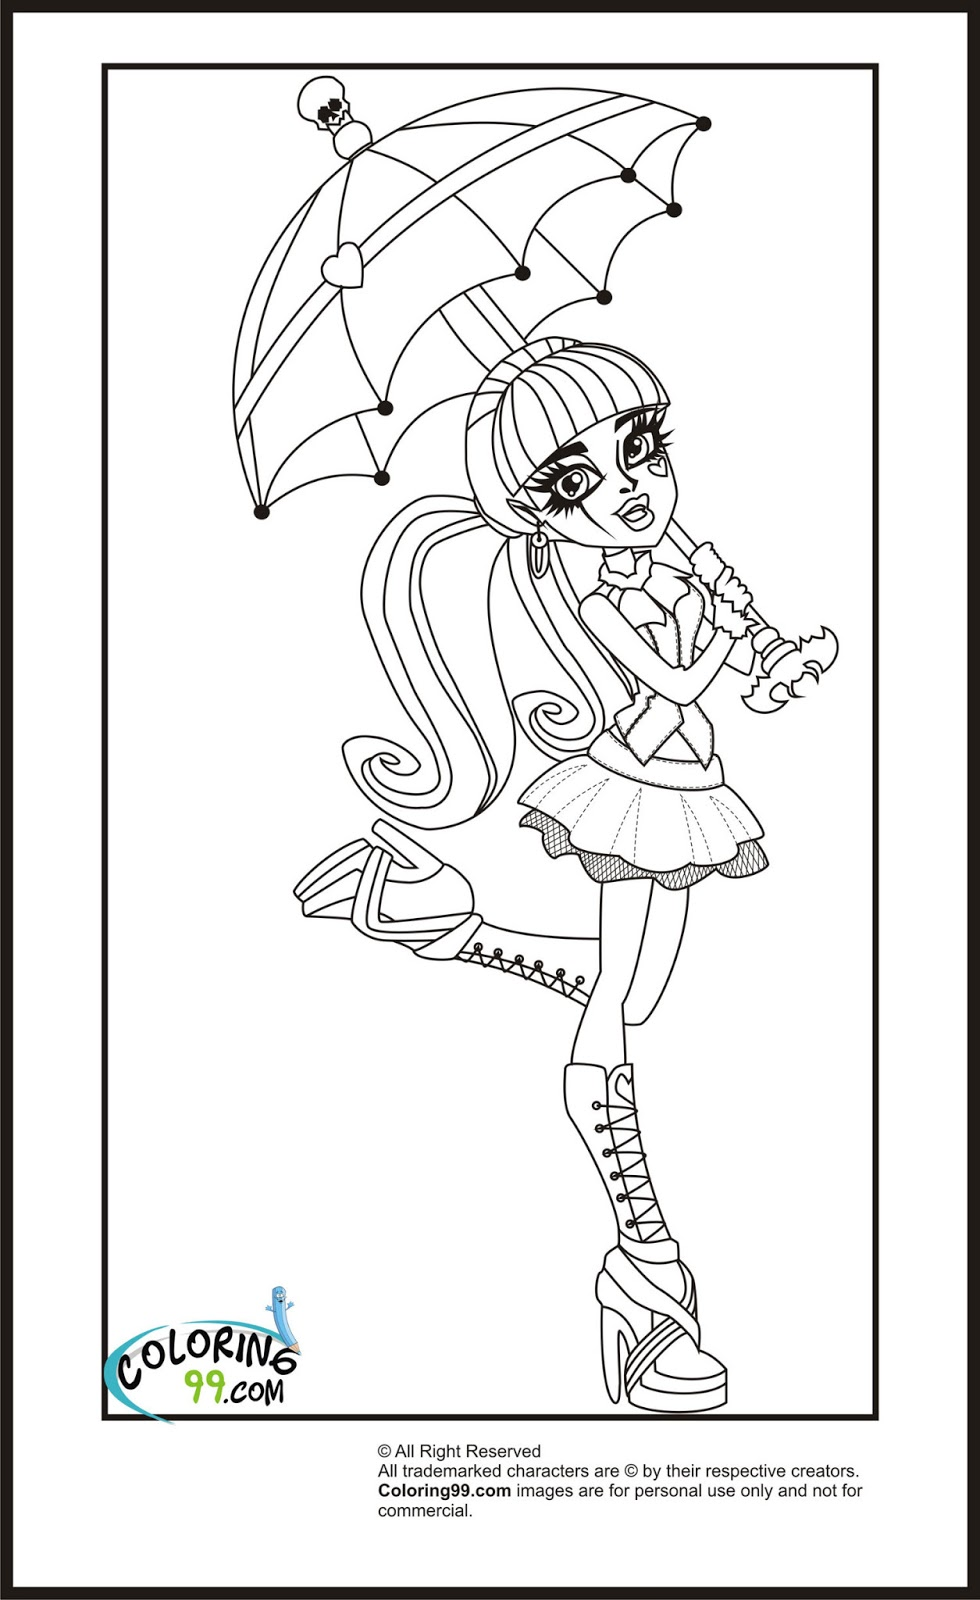 monster high draculaura coloring pages - Draculaura Coloring Pages